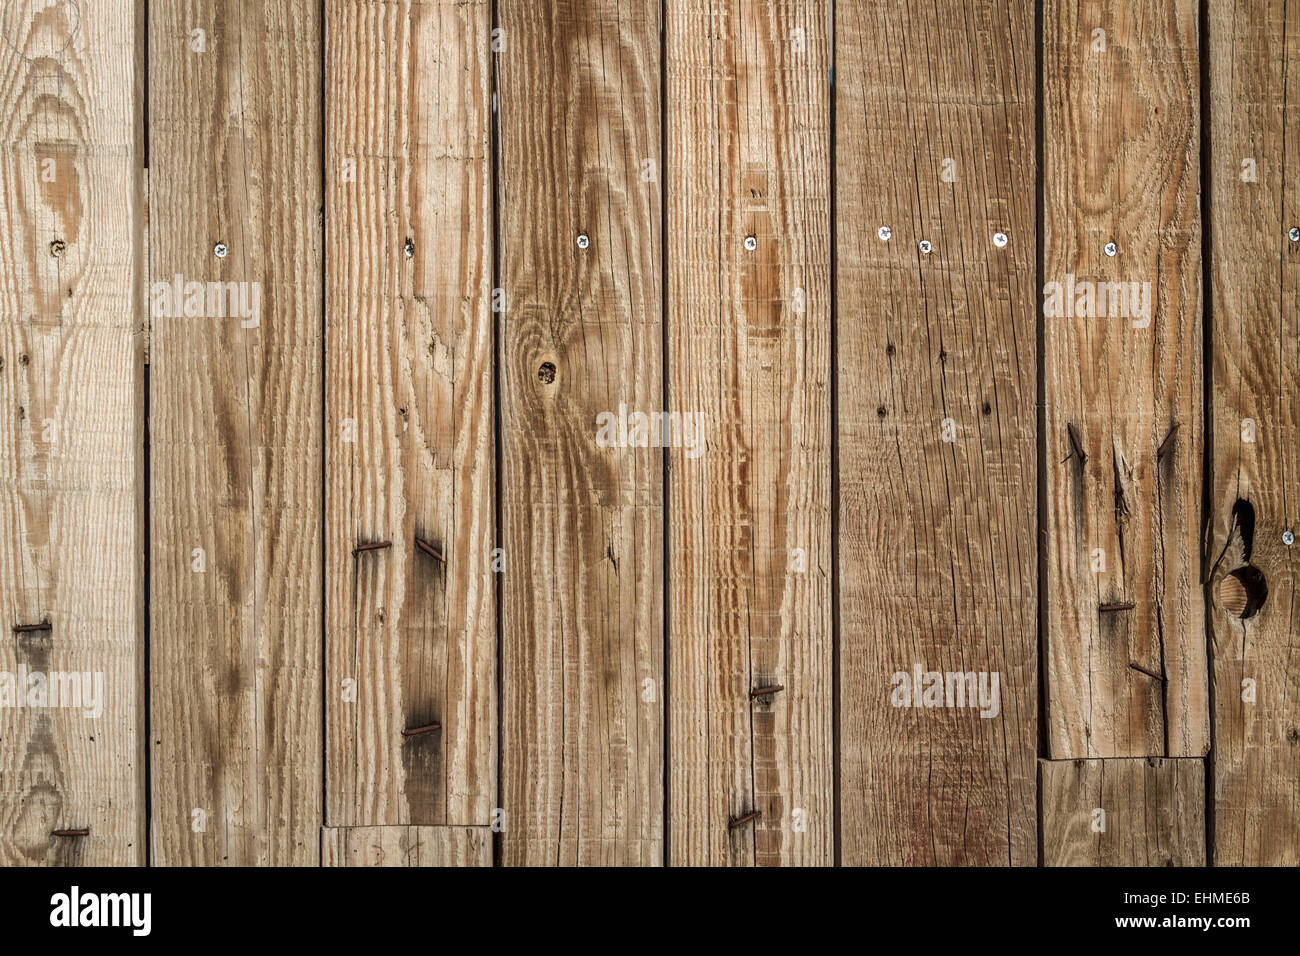 Rustic Weathered Old Barn Wood Background With Knots And